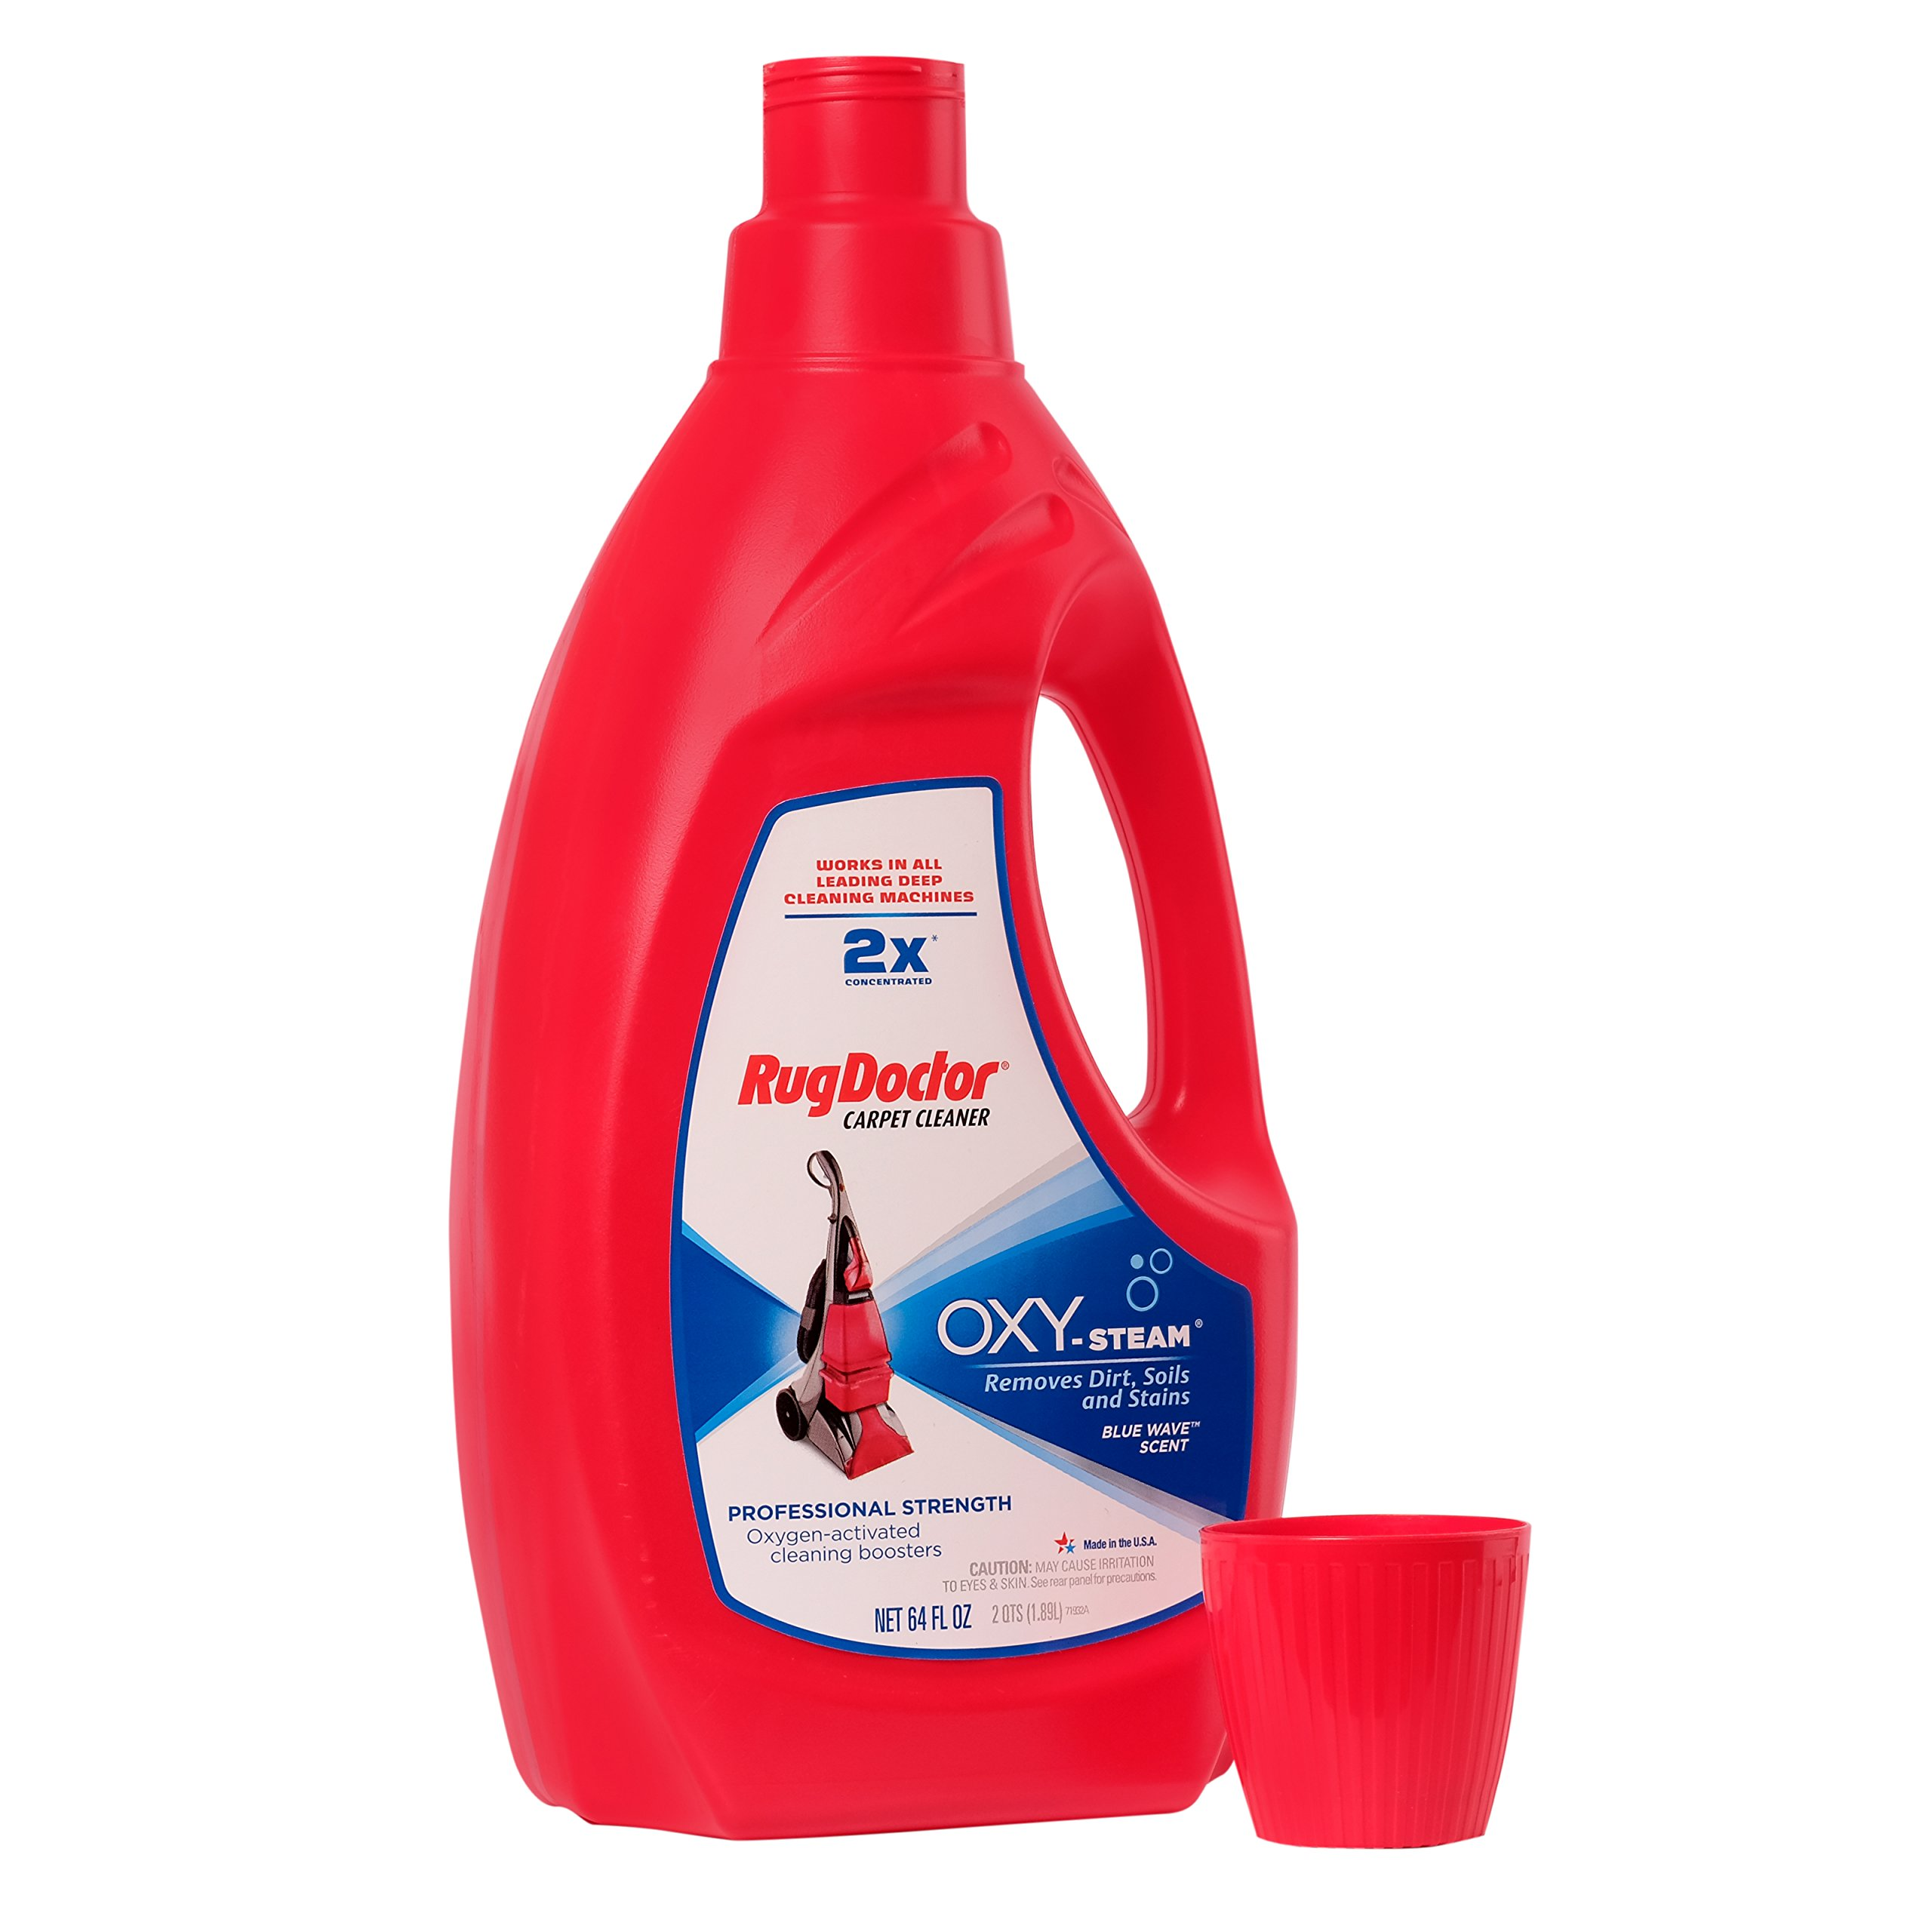 Rug Doctor Oxy Steam Carpet Cleaner Solution (64 oz.); Powerful, Effective, Super Concentrated Solution Formulated with Oxygen-Activated Cleaning Boosters; Works in All Leading Deep Cleaning Machines by Rug Doctor